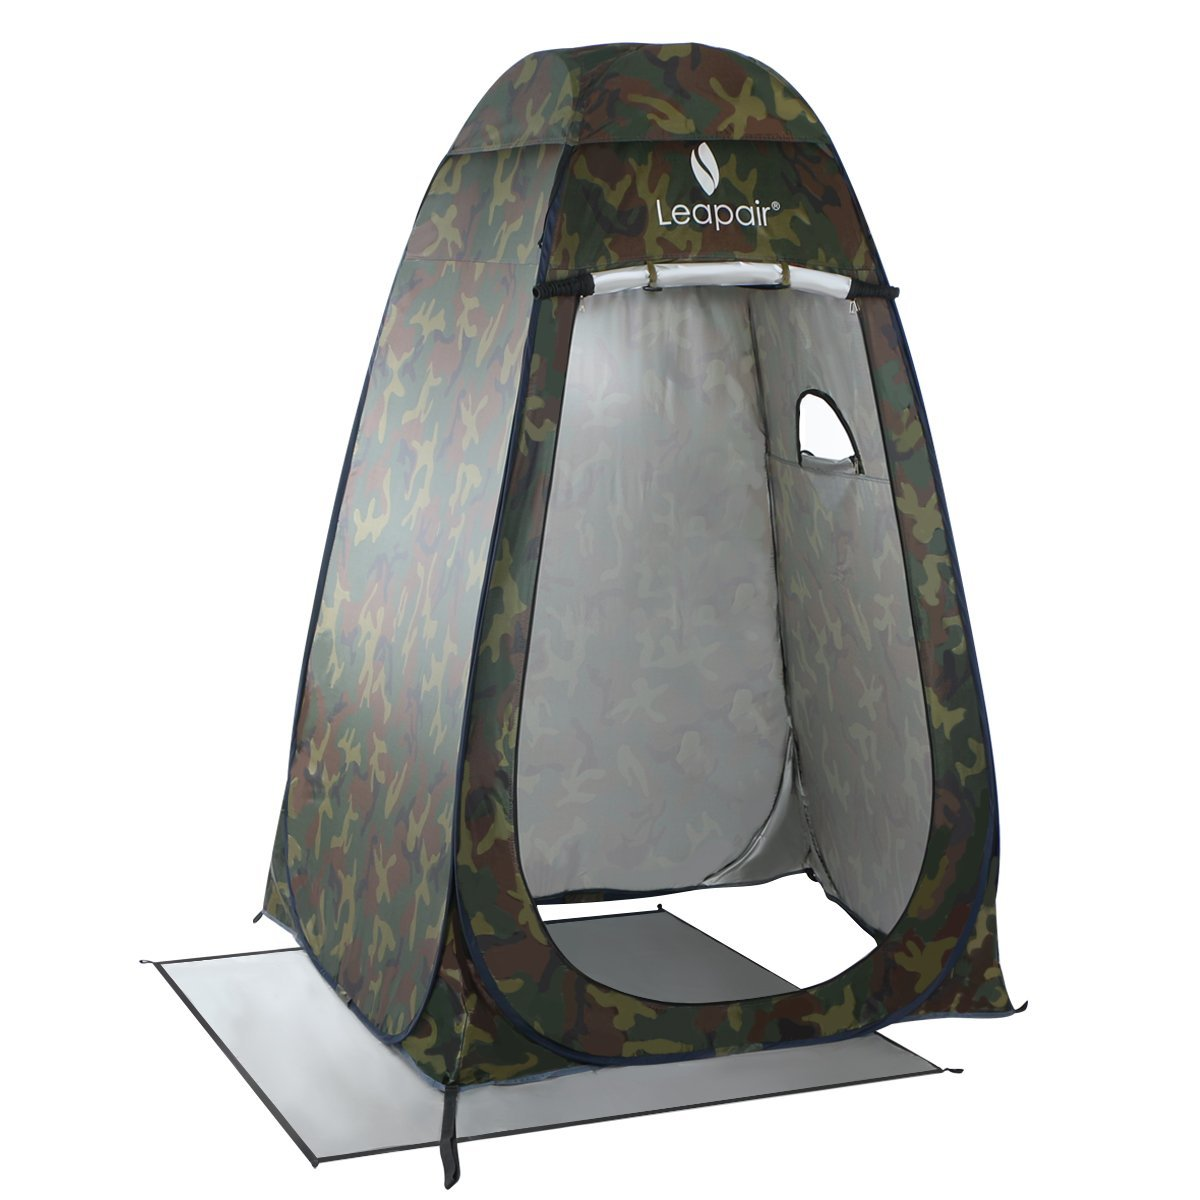 WolfWise Shower Tent Privacy Portable Camping Beach Toilet Pop Up Tents Changing Dressing Room Outdoor Backpack Shelter Camouflage Amazoncouk Sports